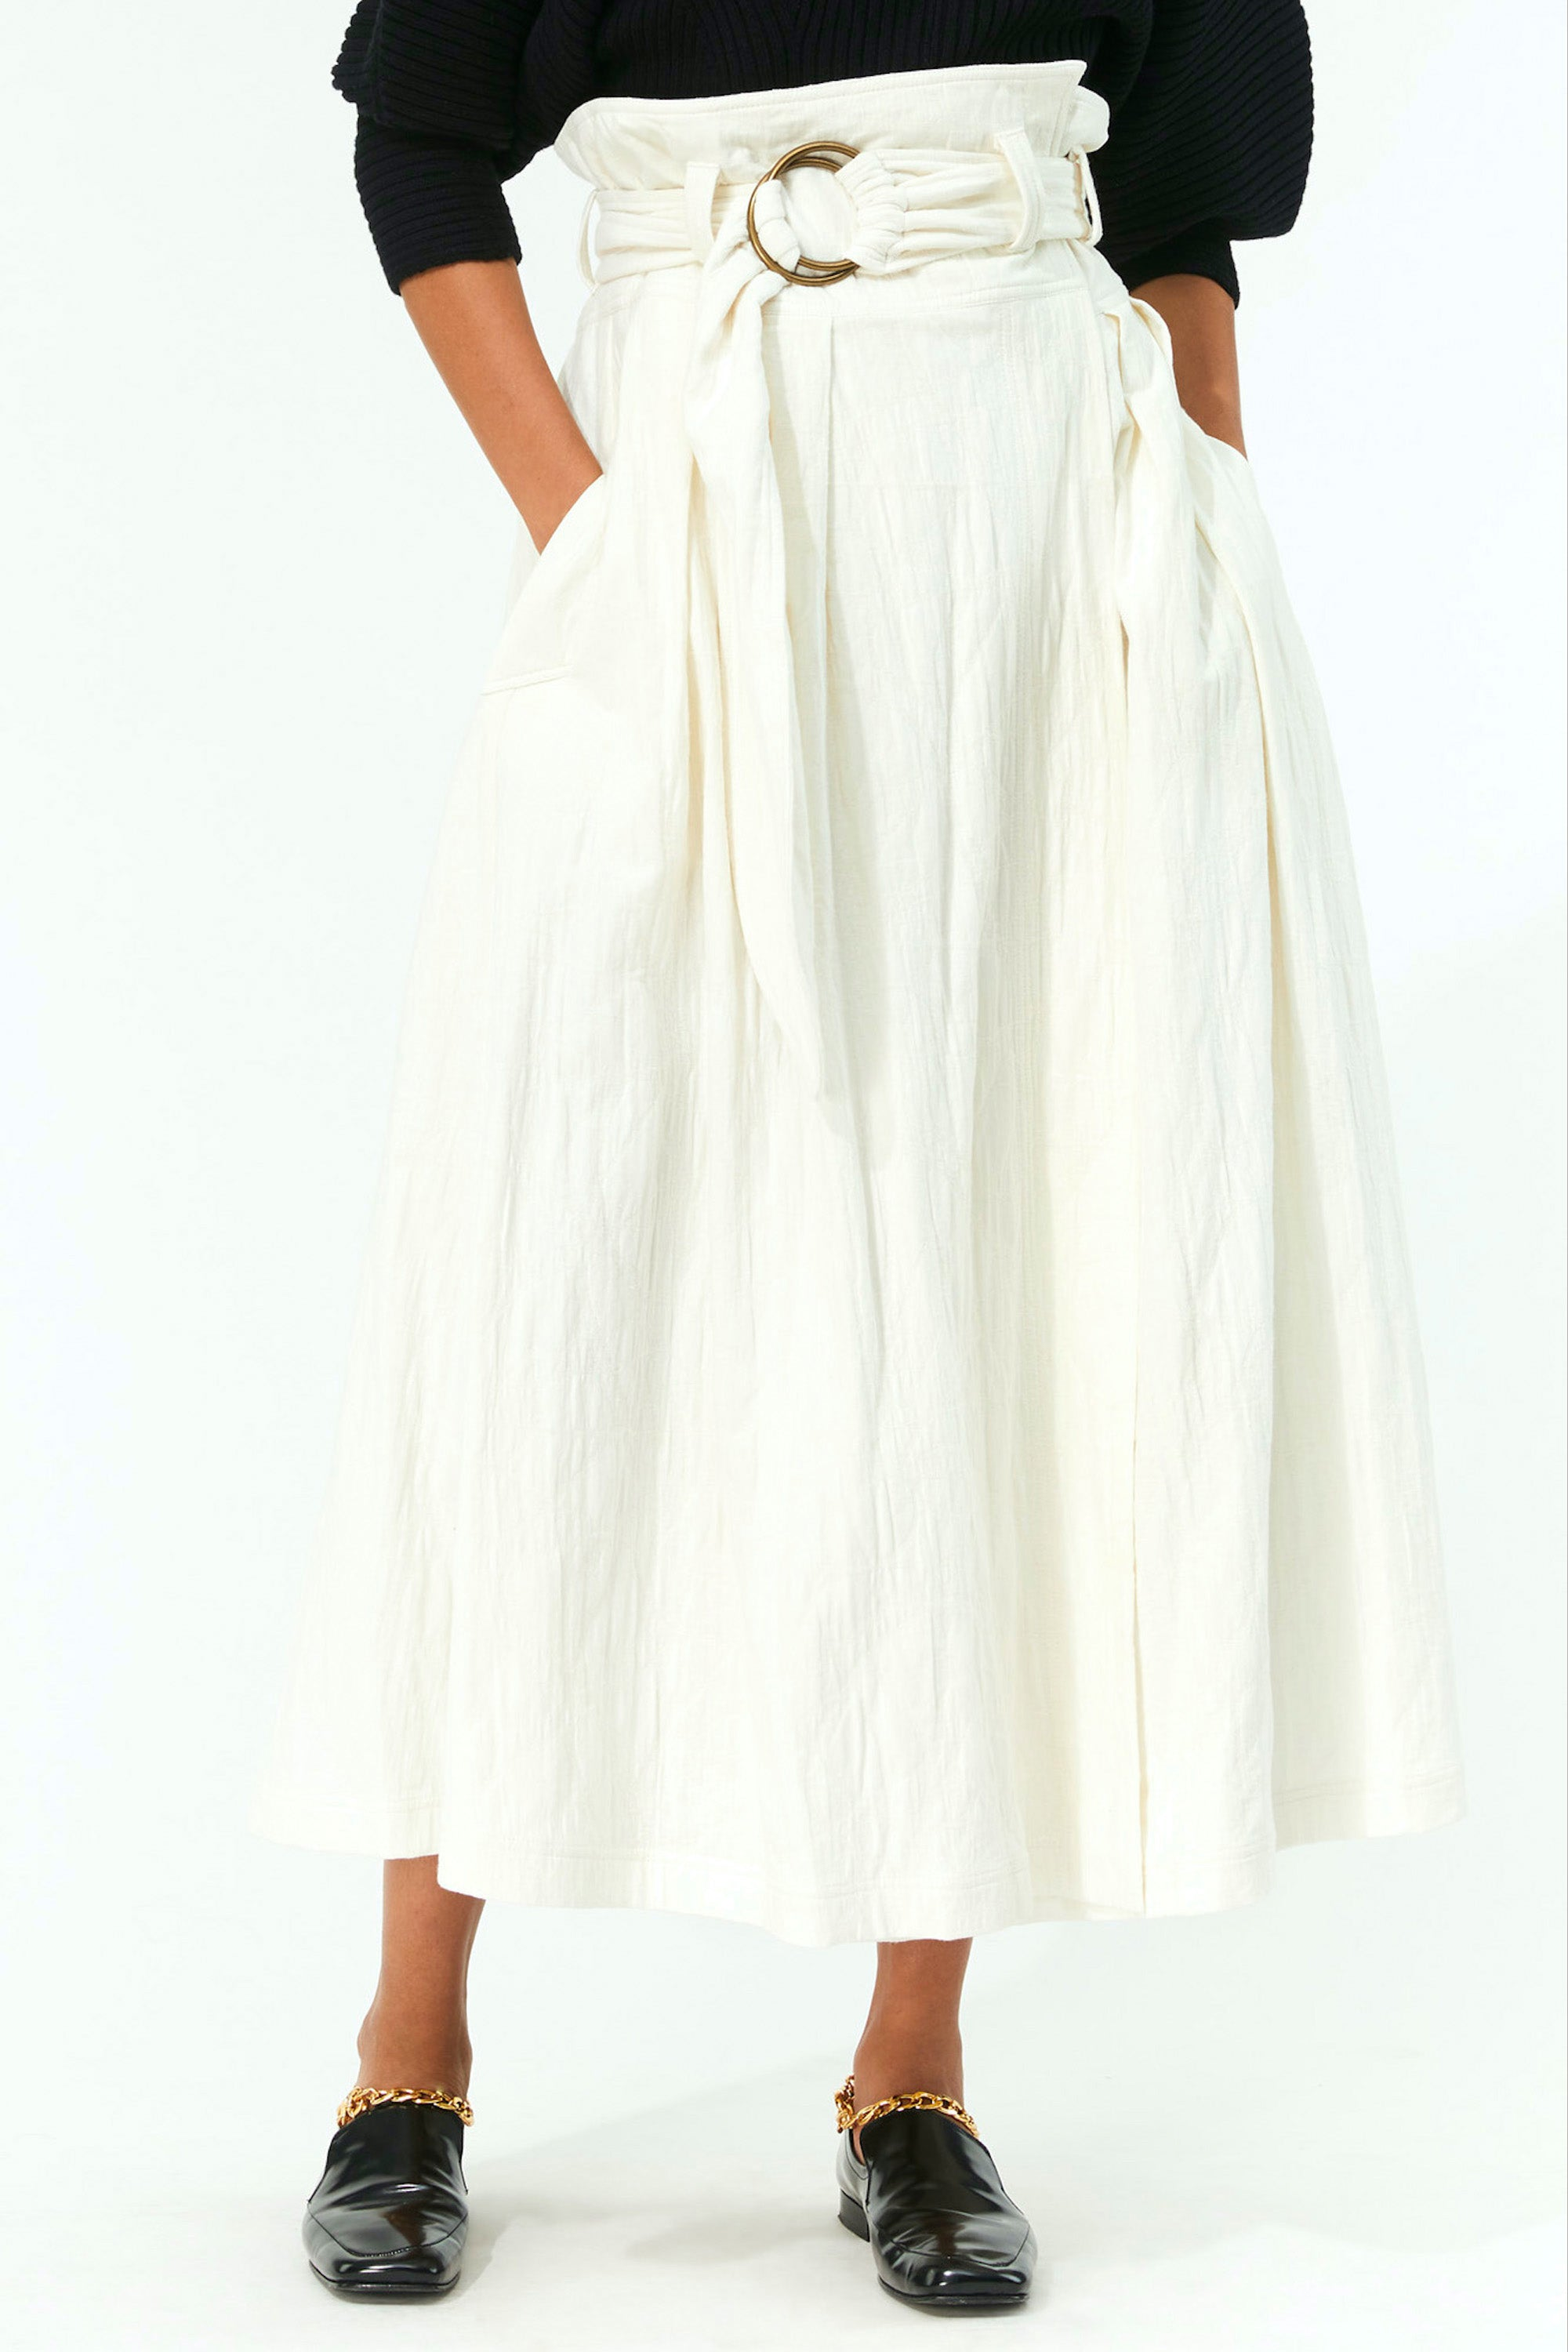 Mara Hoffman Ivory Esperanza Skirt in organic cotton and linen (detail)